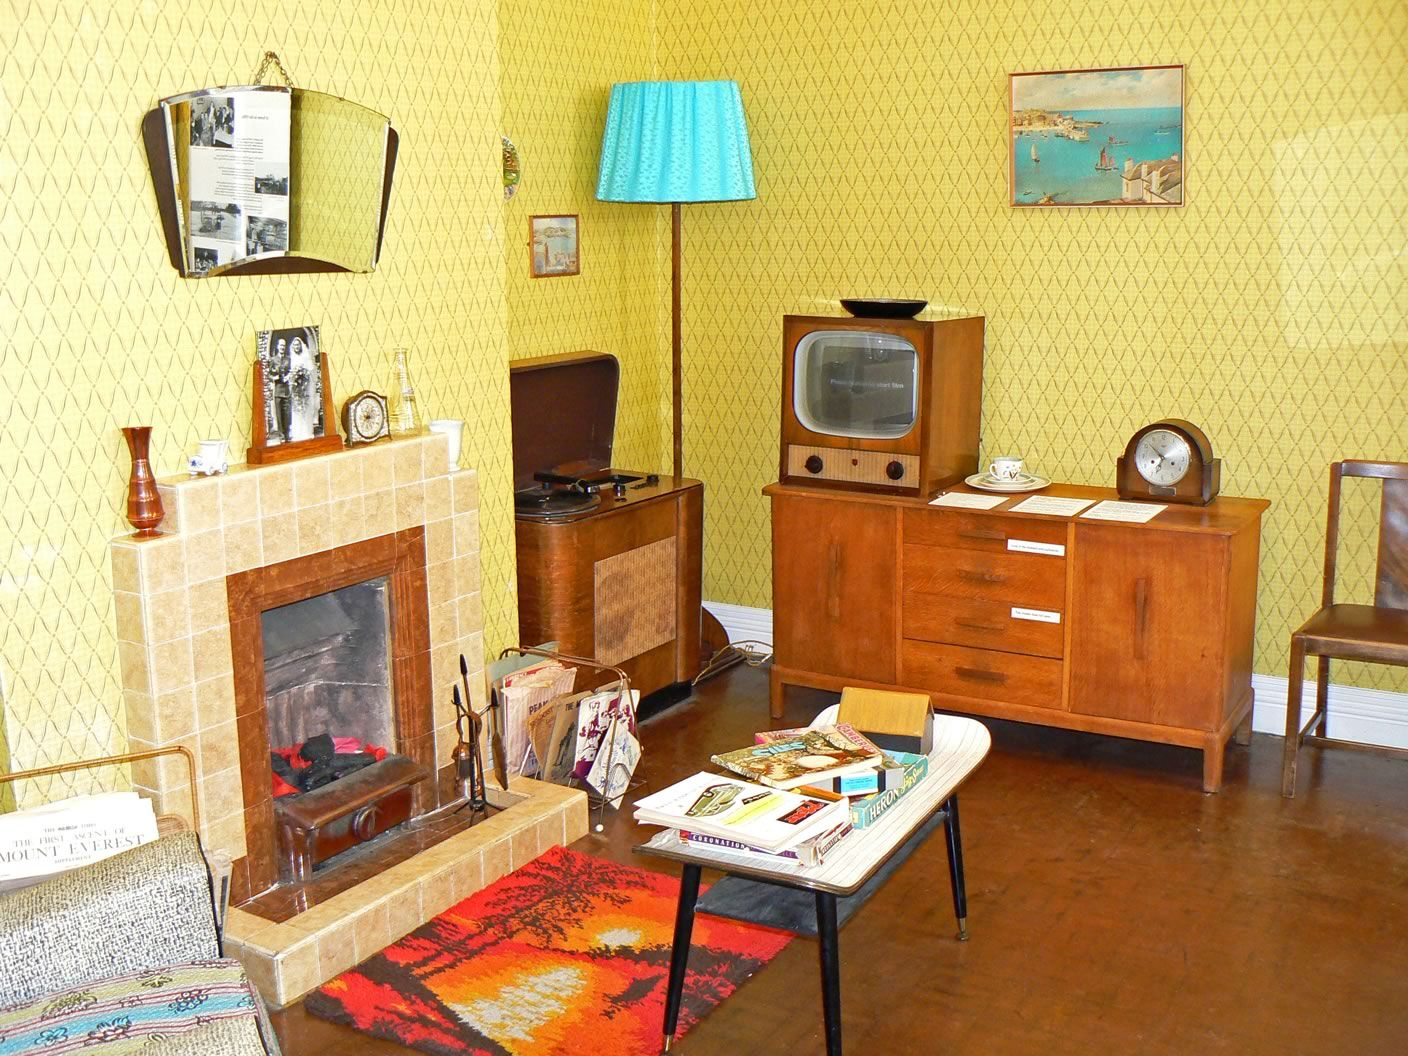 1950s Room At The Museum Of Lynn Life In Kingu0027s Lynn, Norfolk. The Living